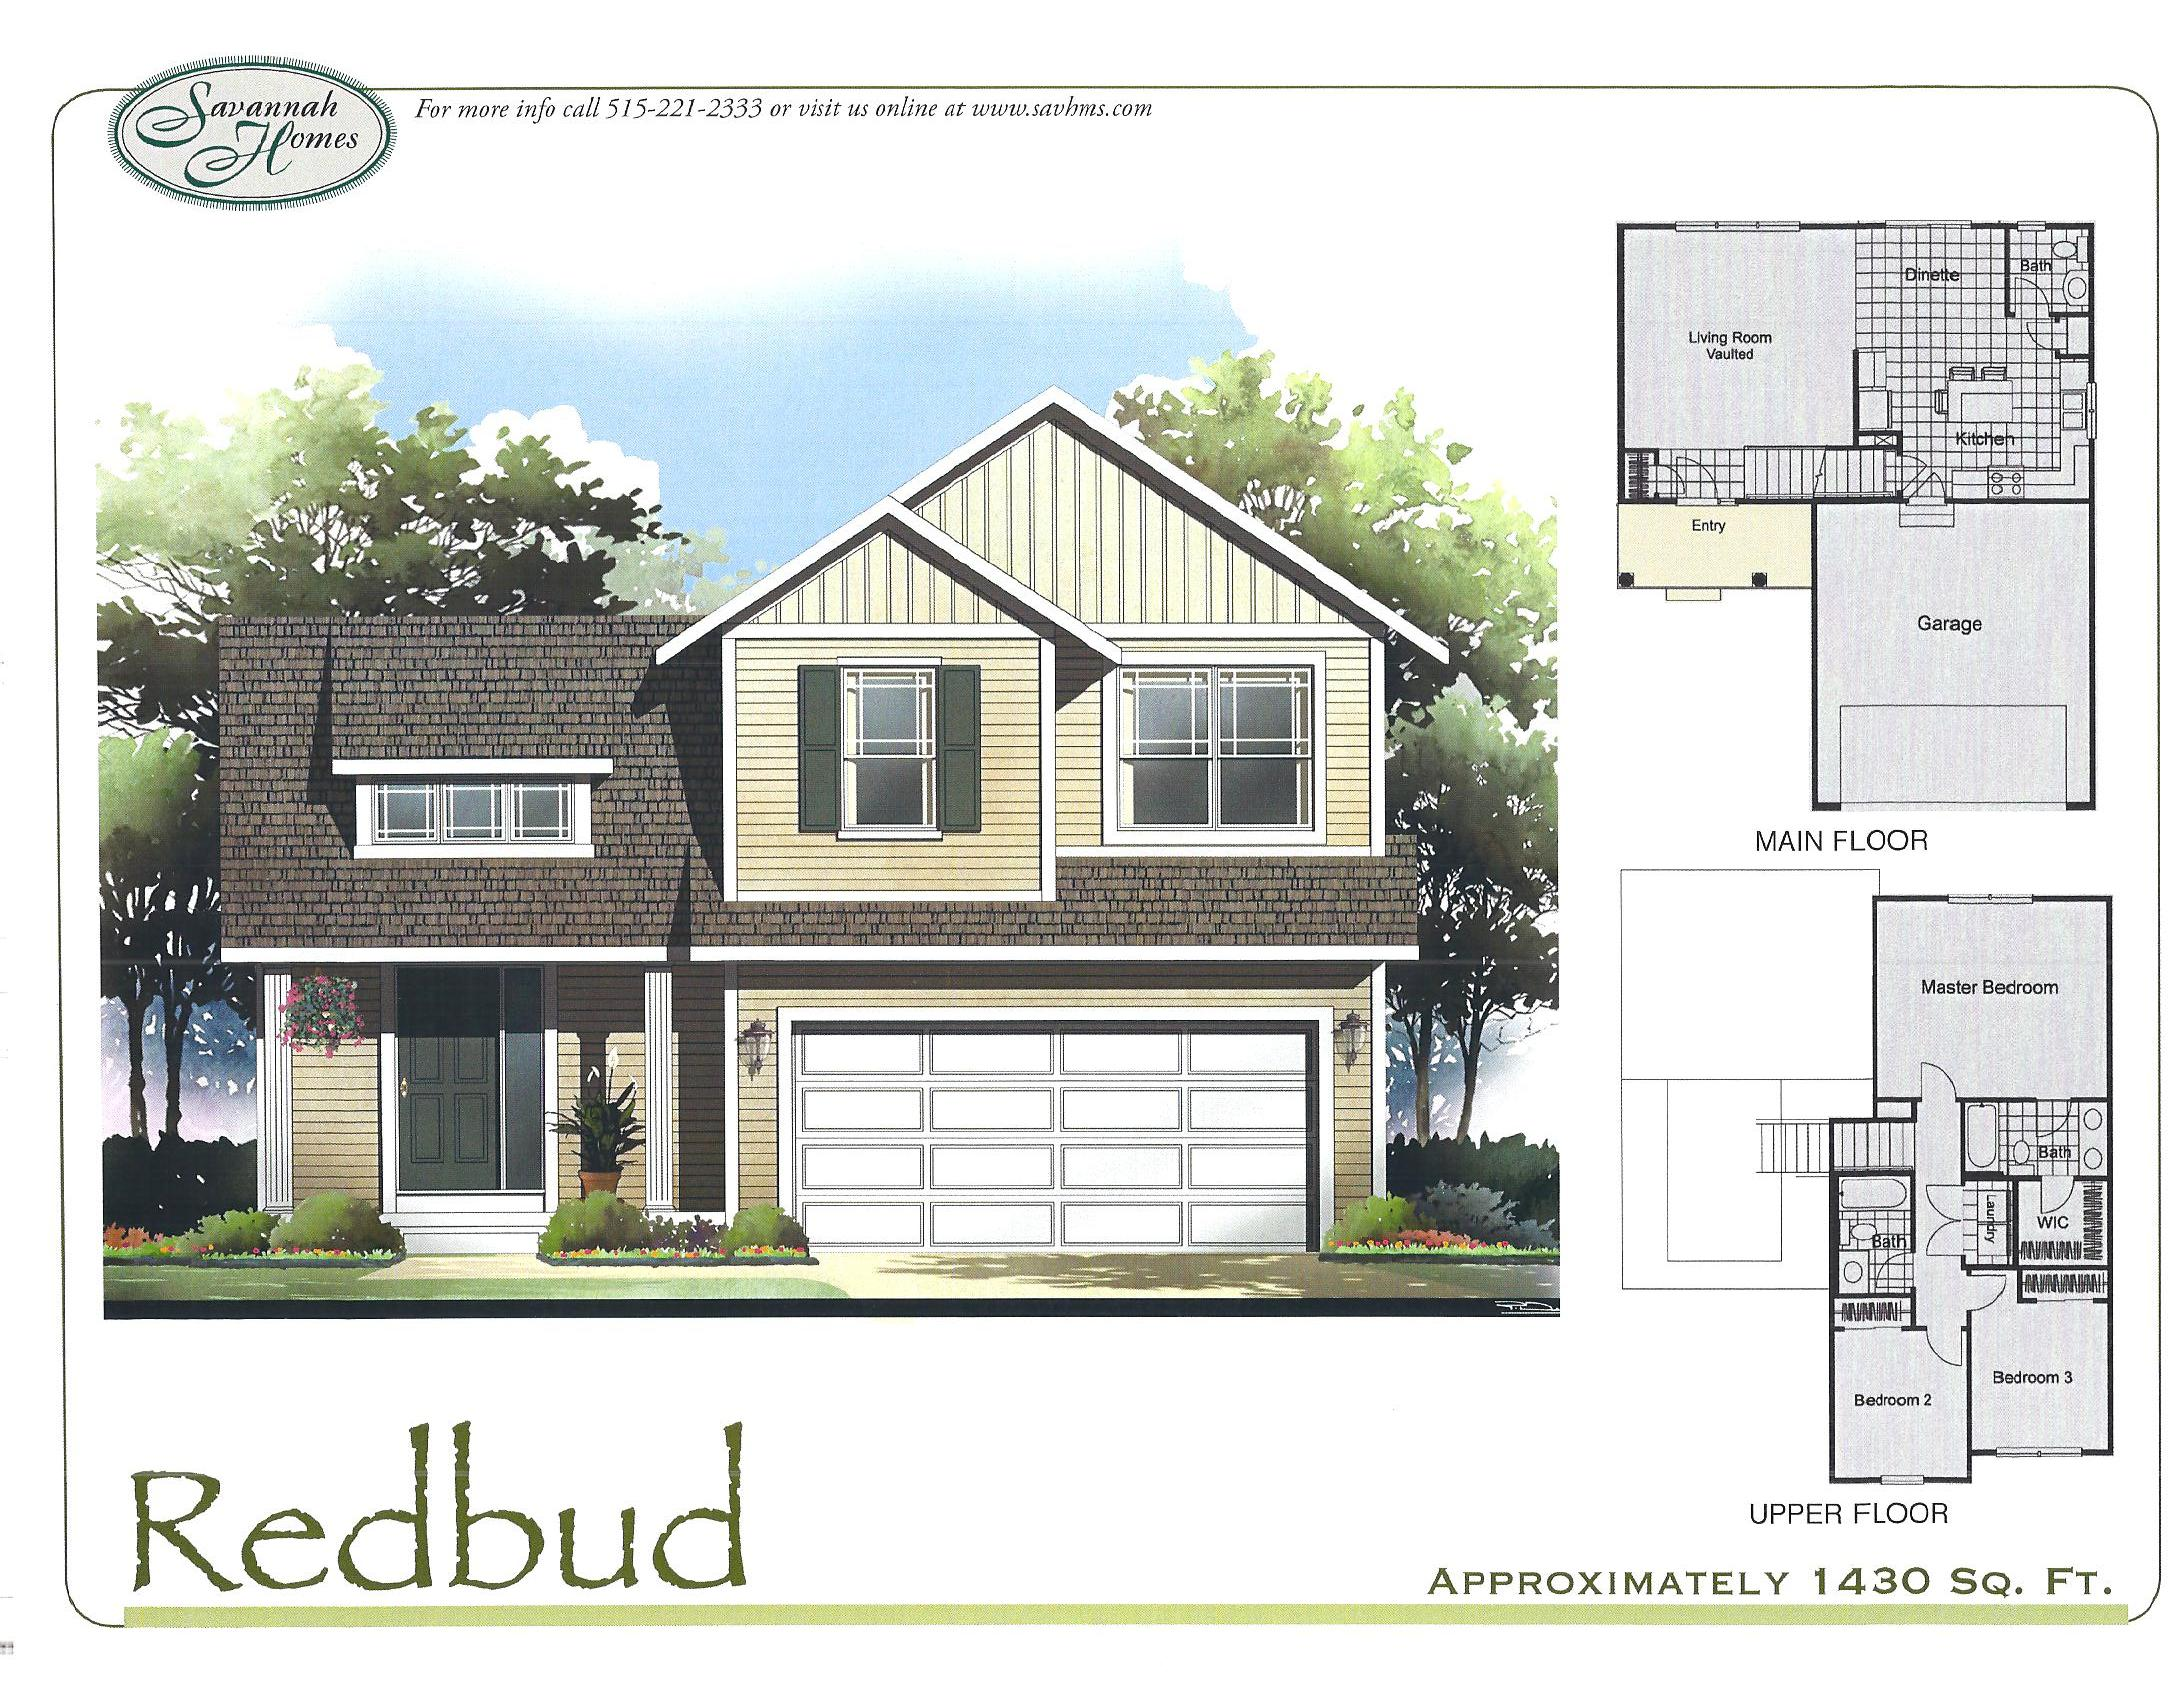 Redbud floorplans savannah homes iowa home builder for Iowa home builders floor plans